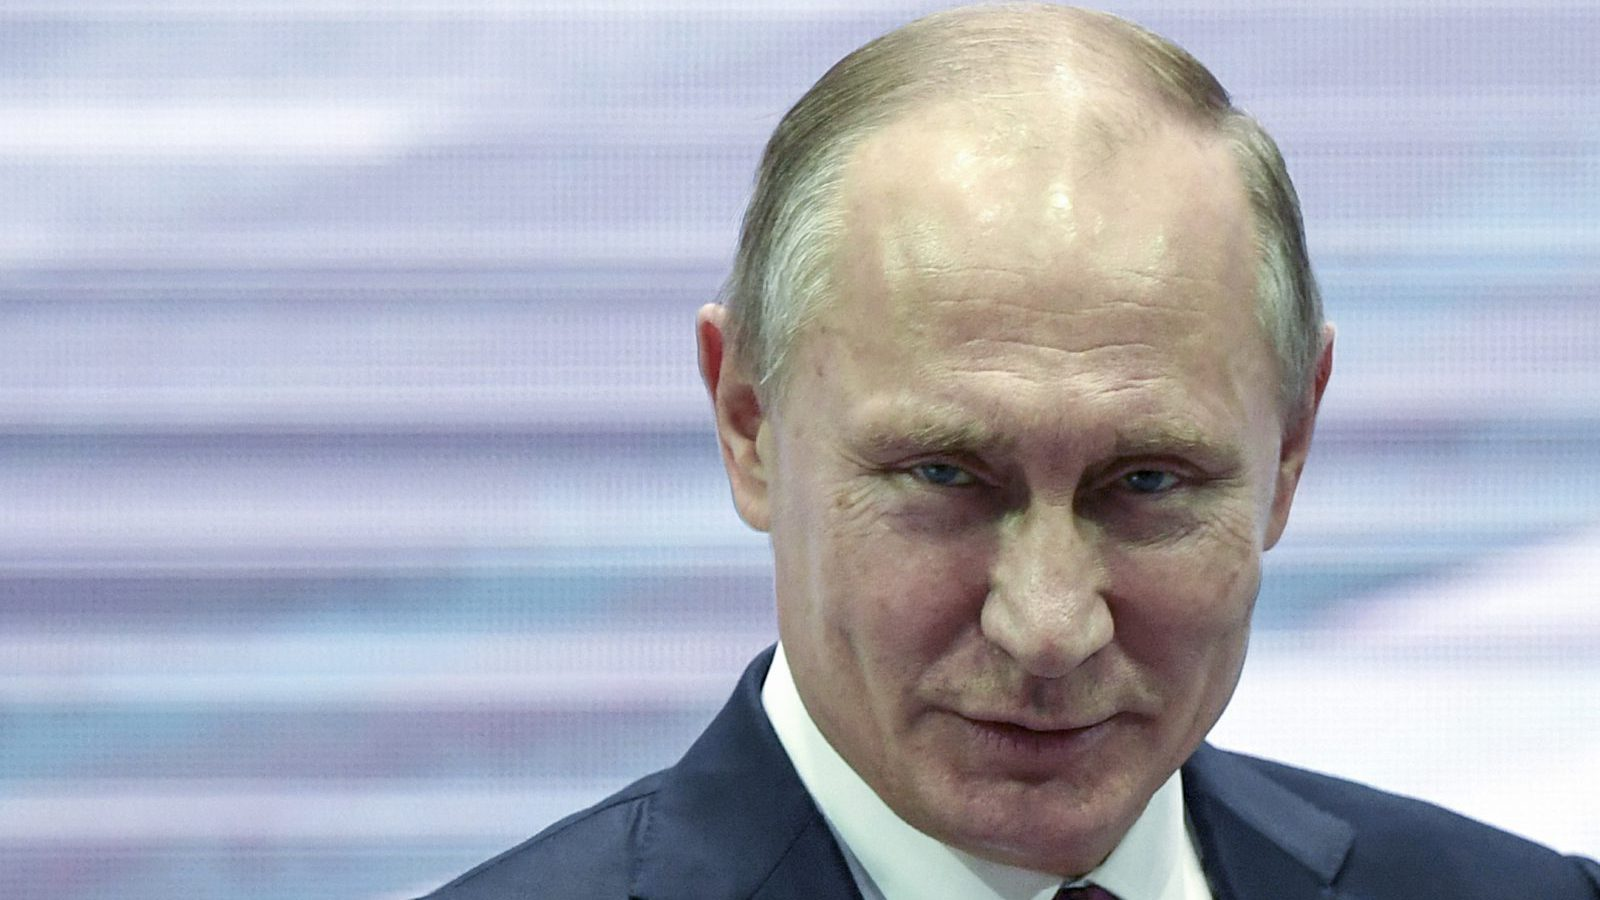 Russian President Vladimir Putin speaks at the 3rd Railway Congress in Moscow in Moscow, Russia, Wednesday, Nov. 29, 2017. Putin spoke to railway workers about the industry problems and voiced hoped that Russian Railways will work well to serve visitors of the World Cup in Russia next year.